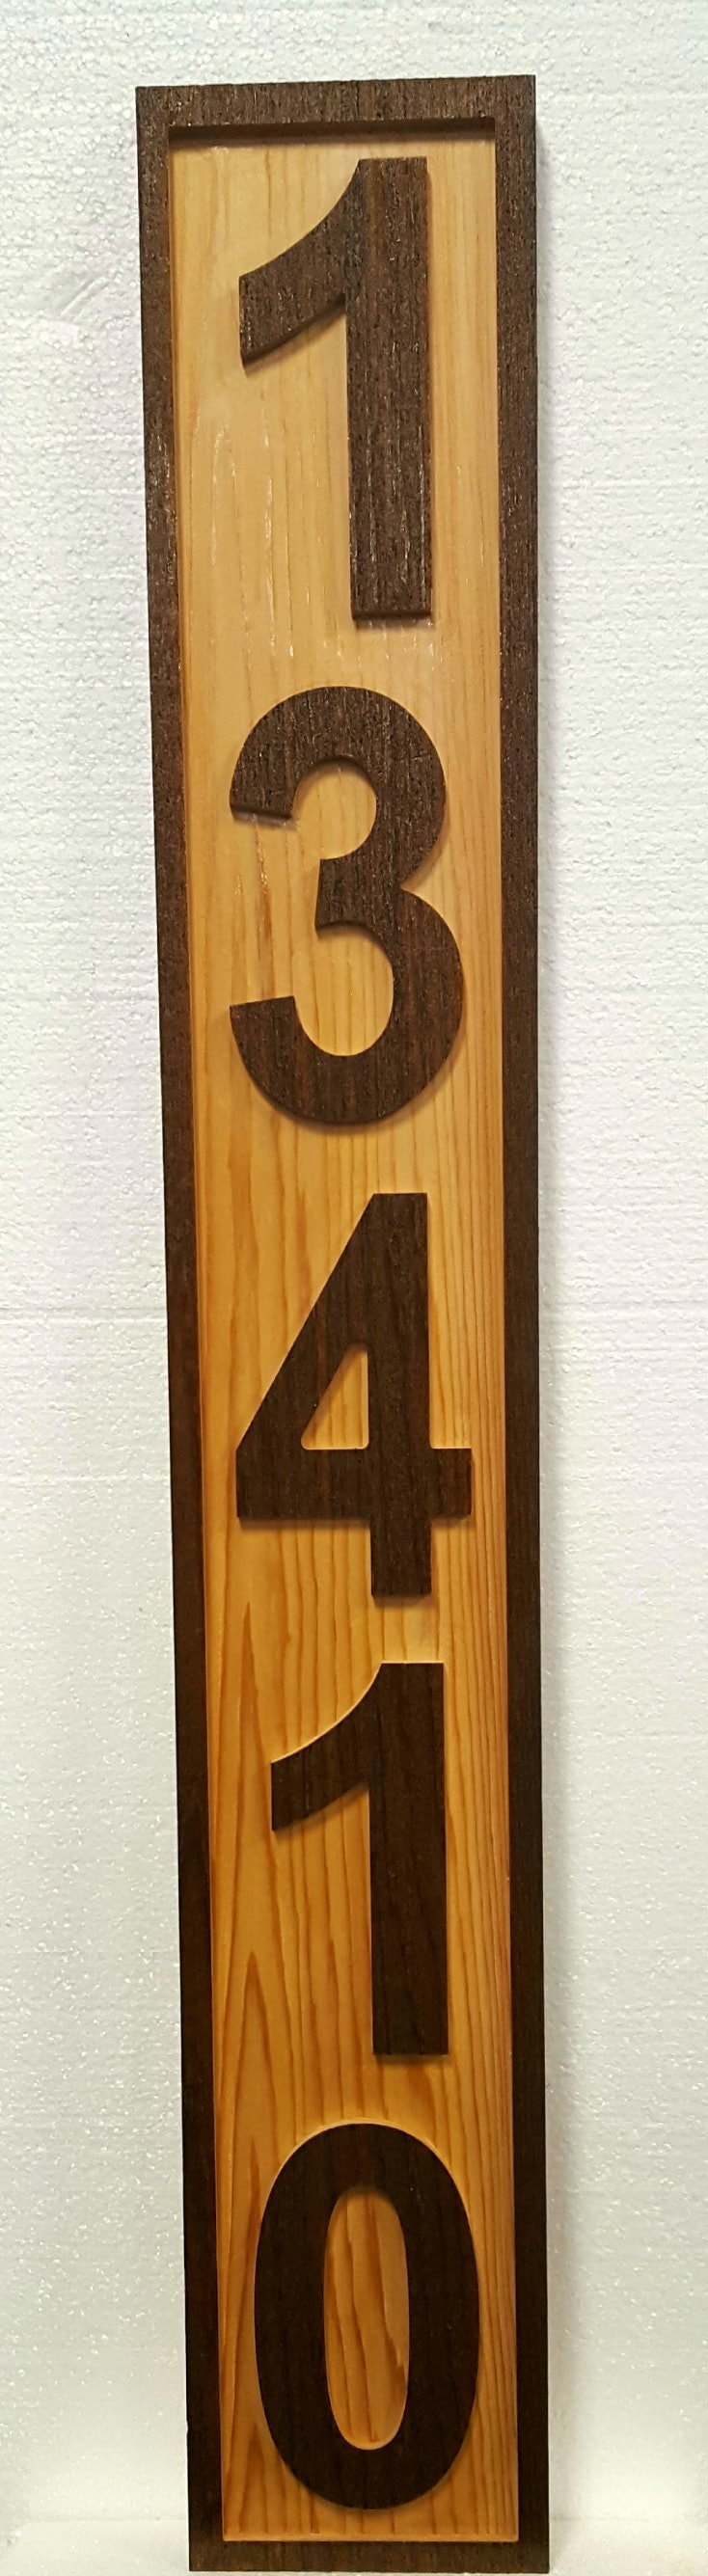 Custom House Number Sign - Four Numbers